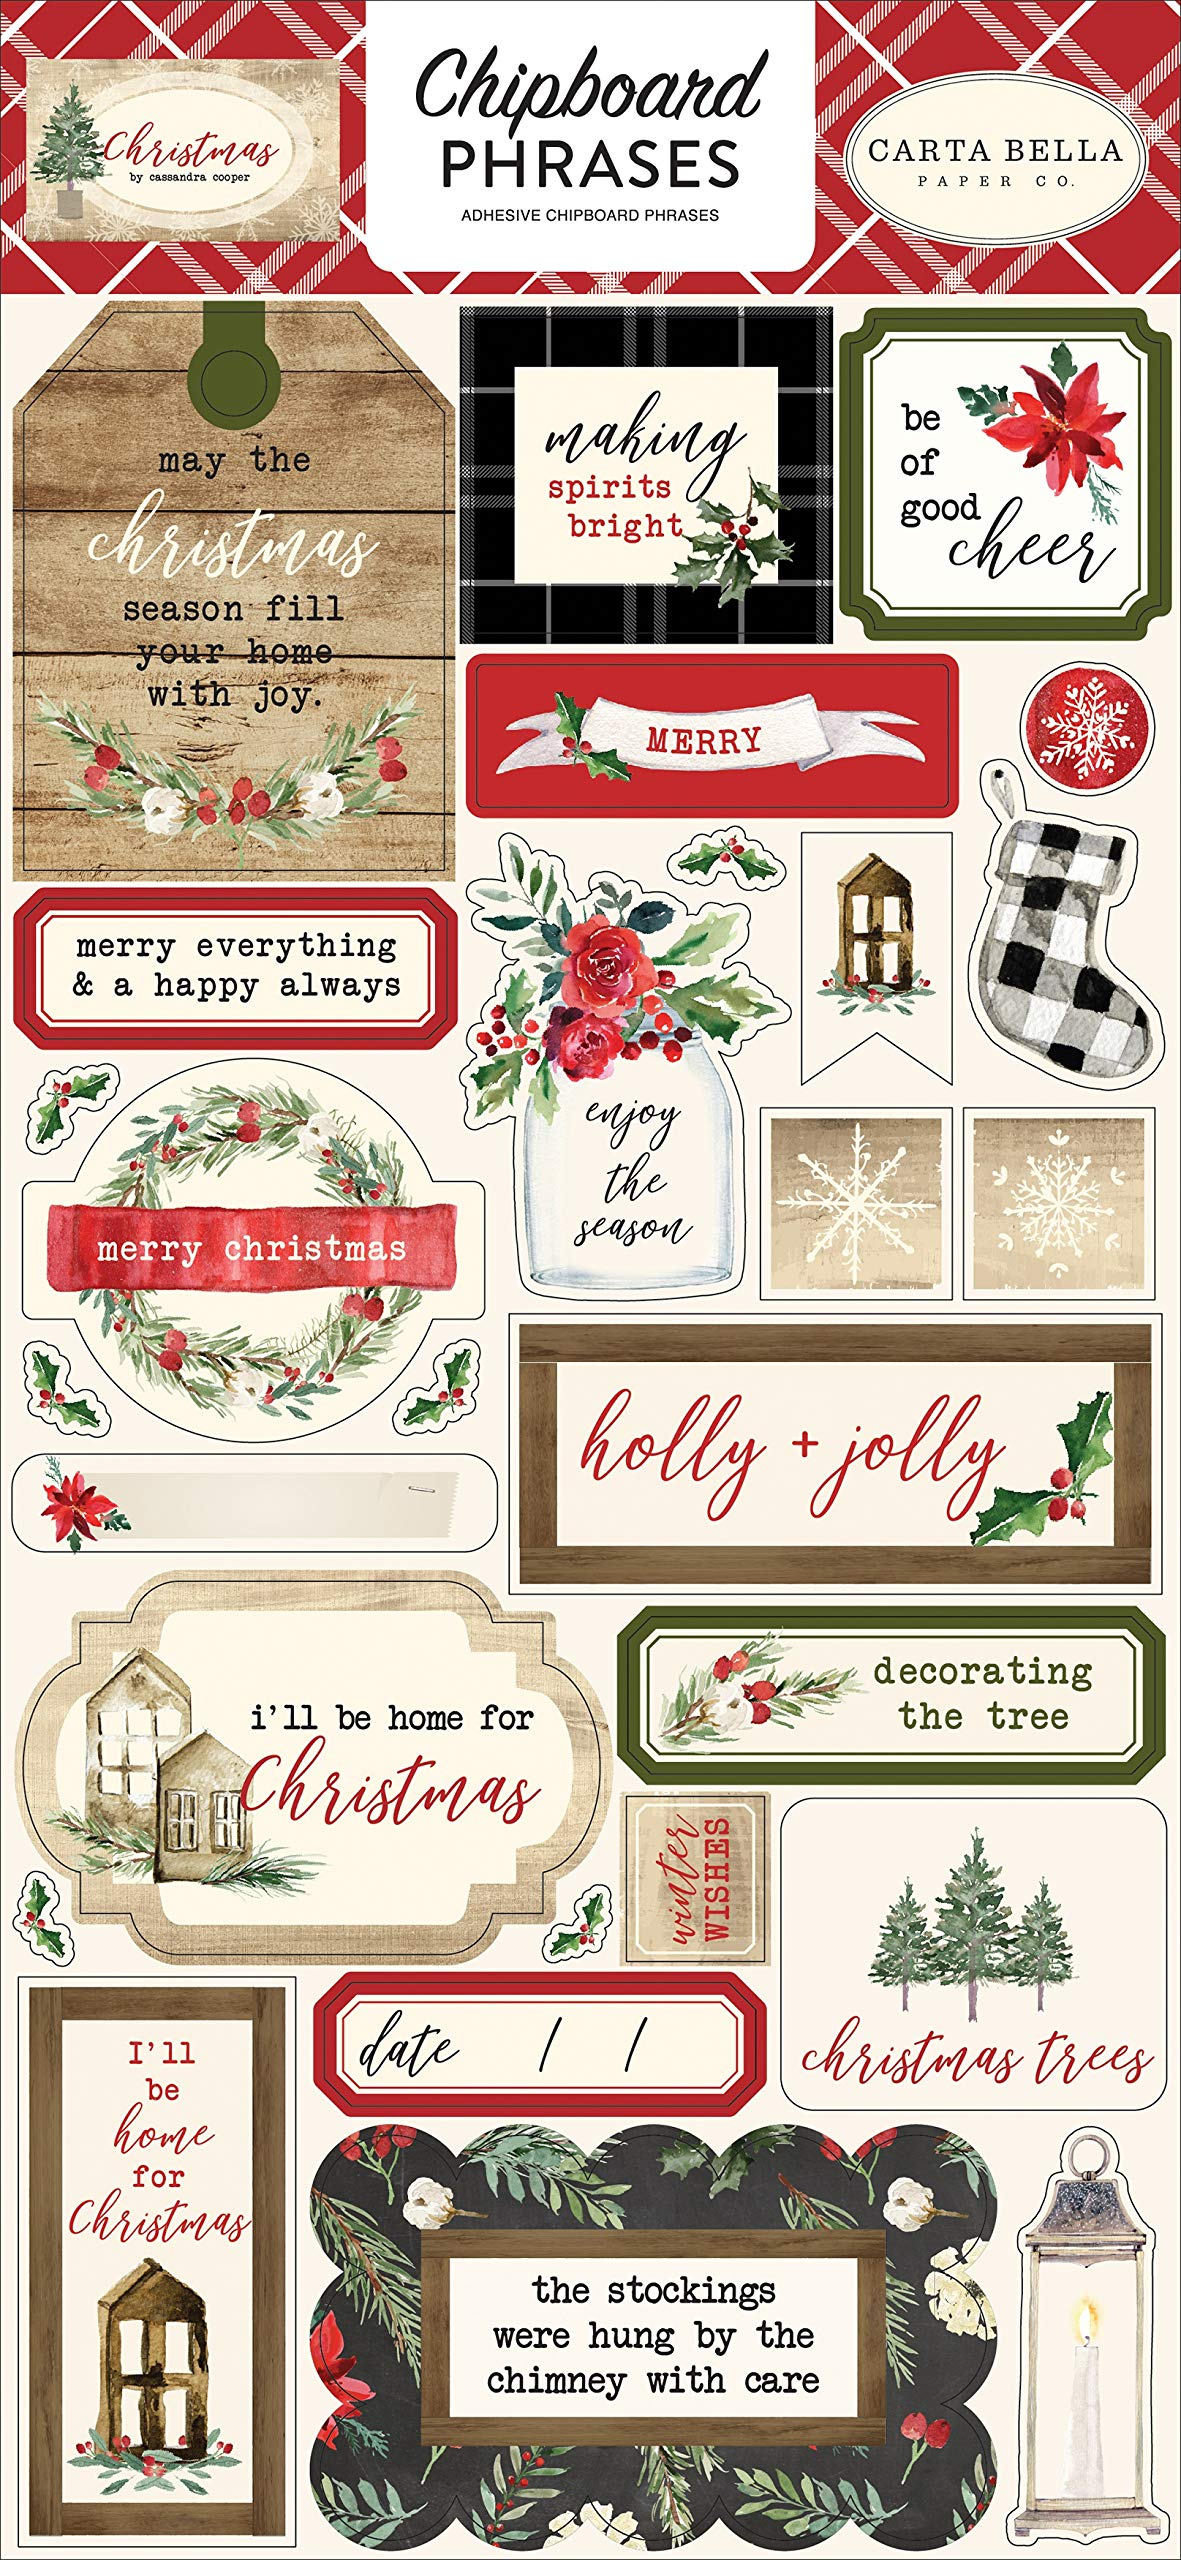 Carta Bella Paper Company CBCH89022 Christmas 6x12 Phrases chipboard Red/Green/Black/Tan